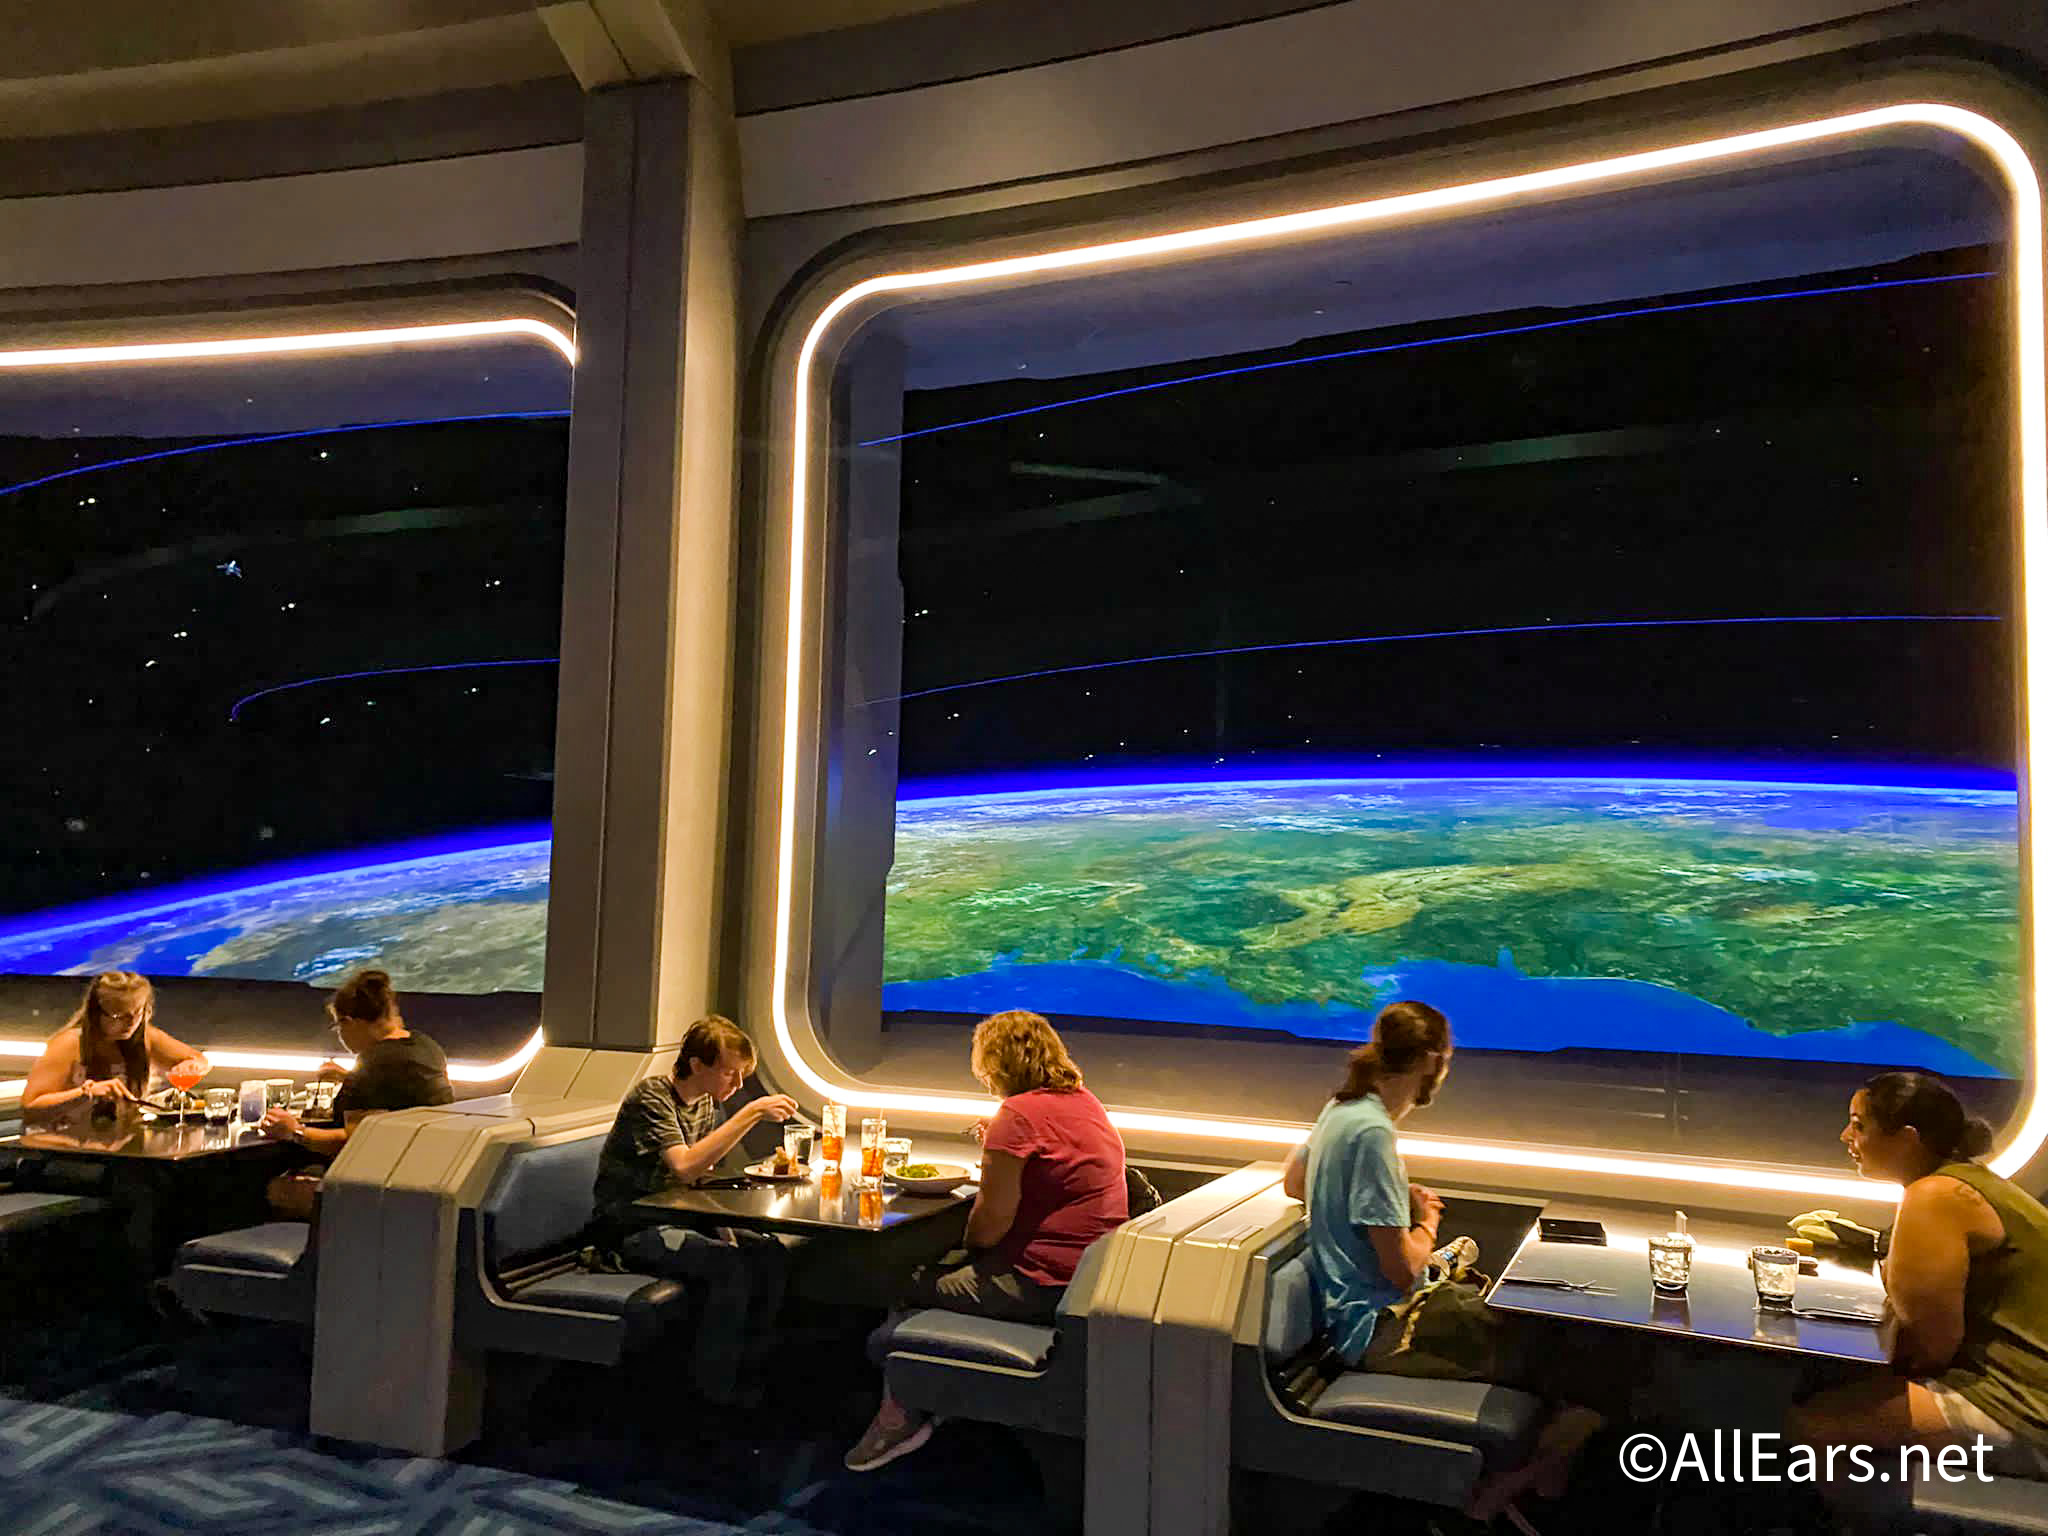 Want to Stay at Disney World's 'Star Wars' Hotel? Why You Should Go to Space 220 FIRST. - AllEars.Net